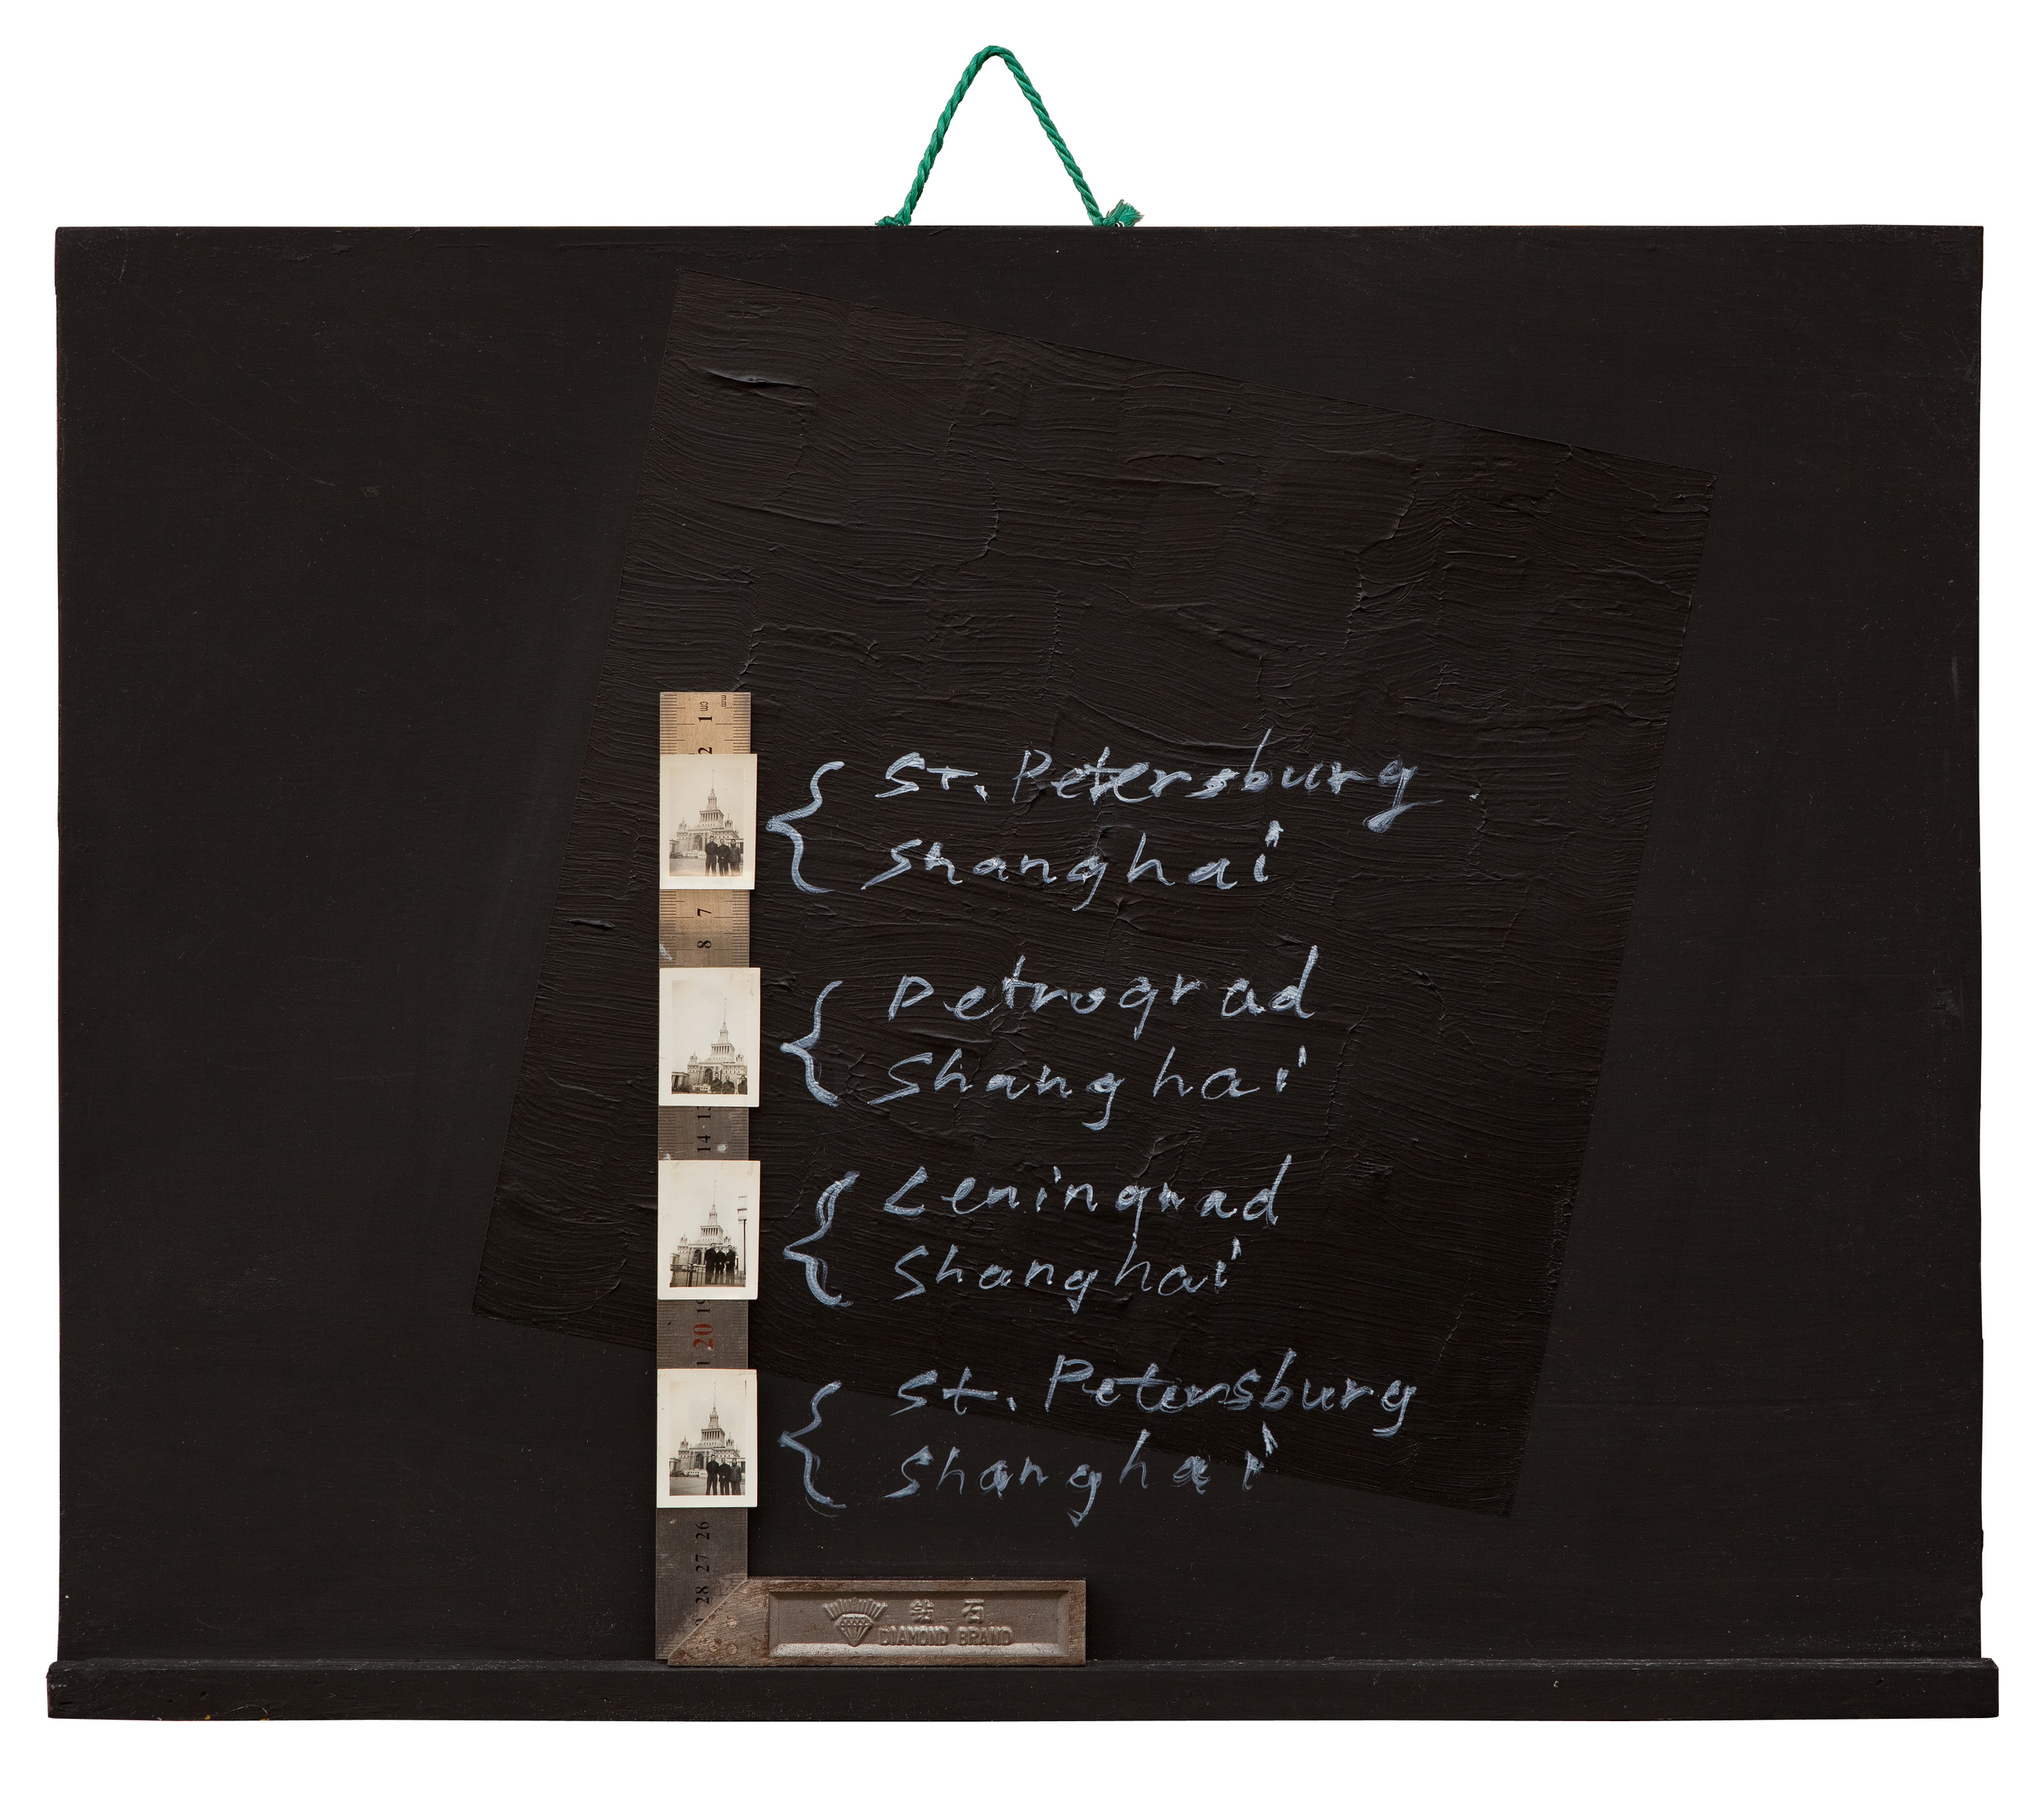 Li Qing 李青, The Black Square on A Blackboard 黑板上的黑方块, 2013, Mixed Media 综合材料, 52 x 60 x 3.5 cm